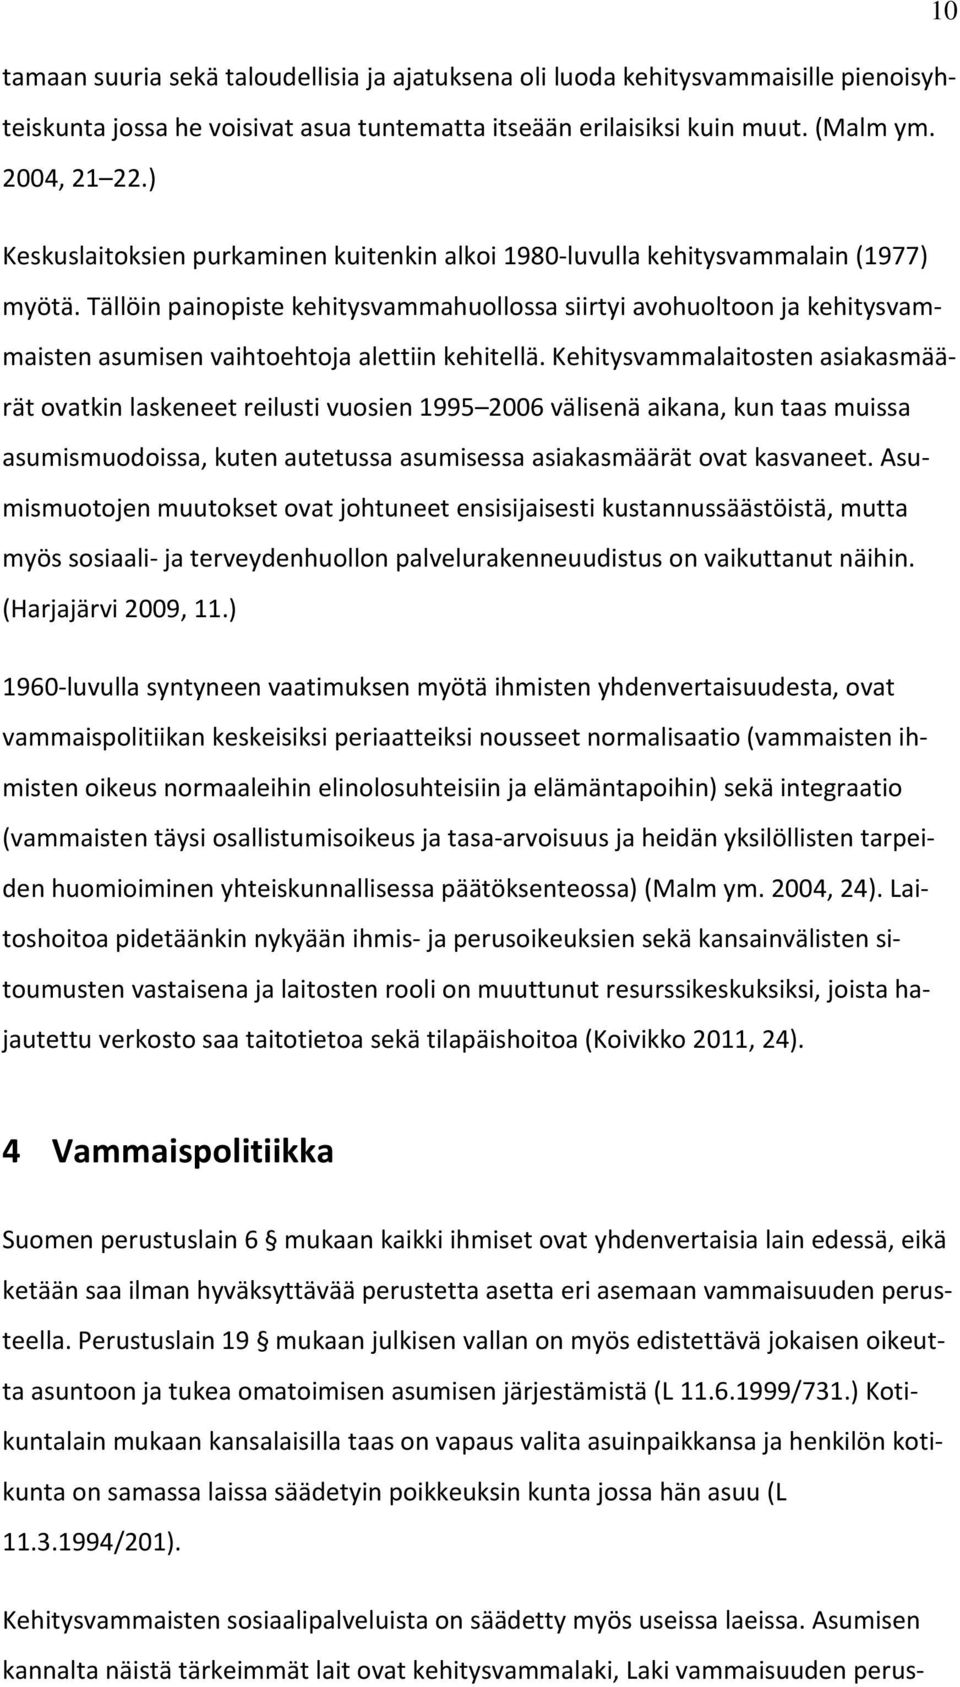 Paras online dating chat ylös